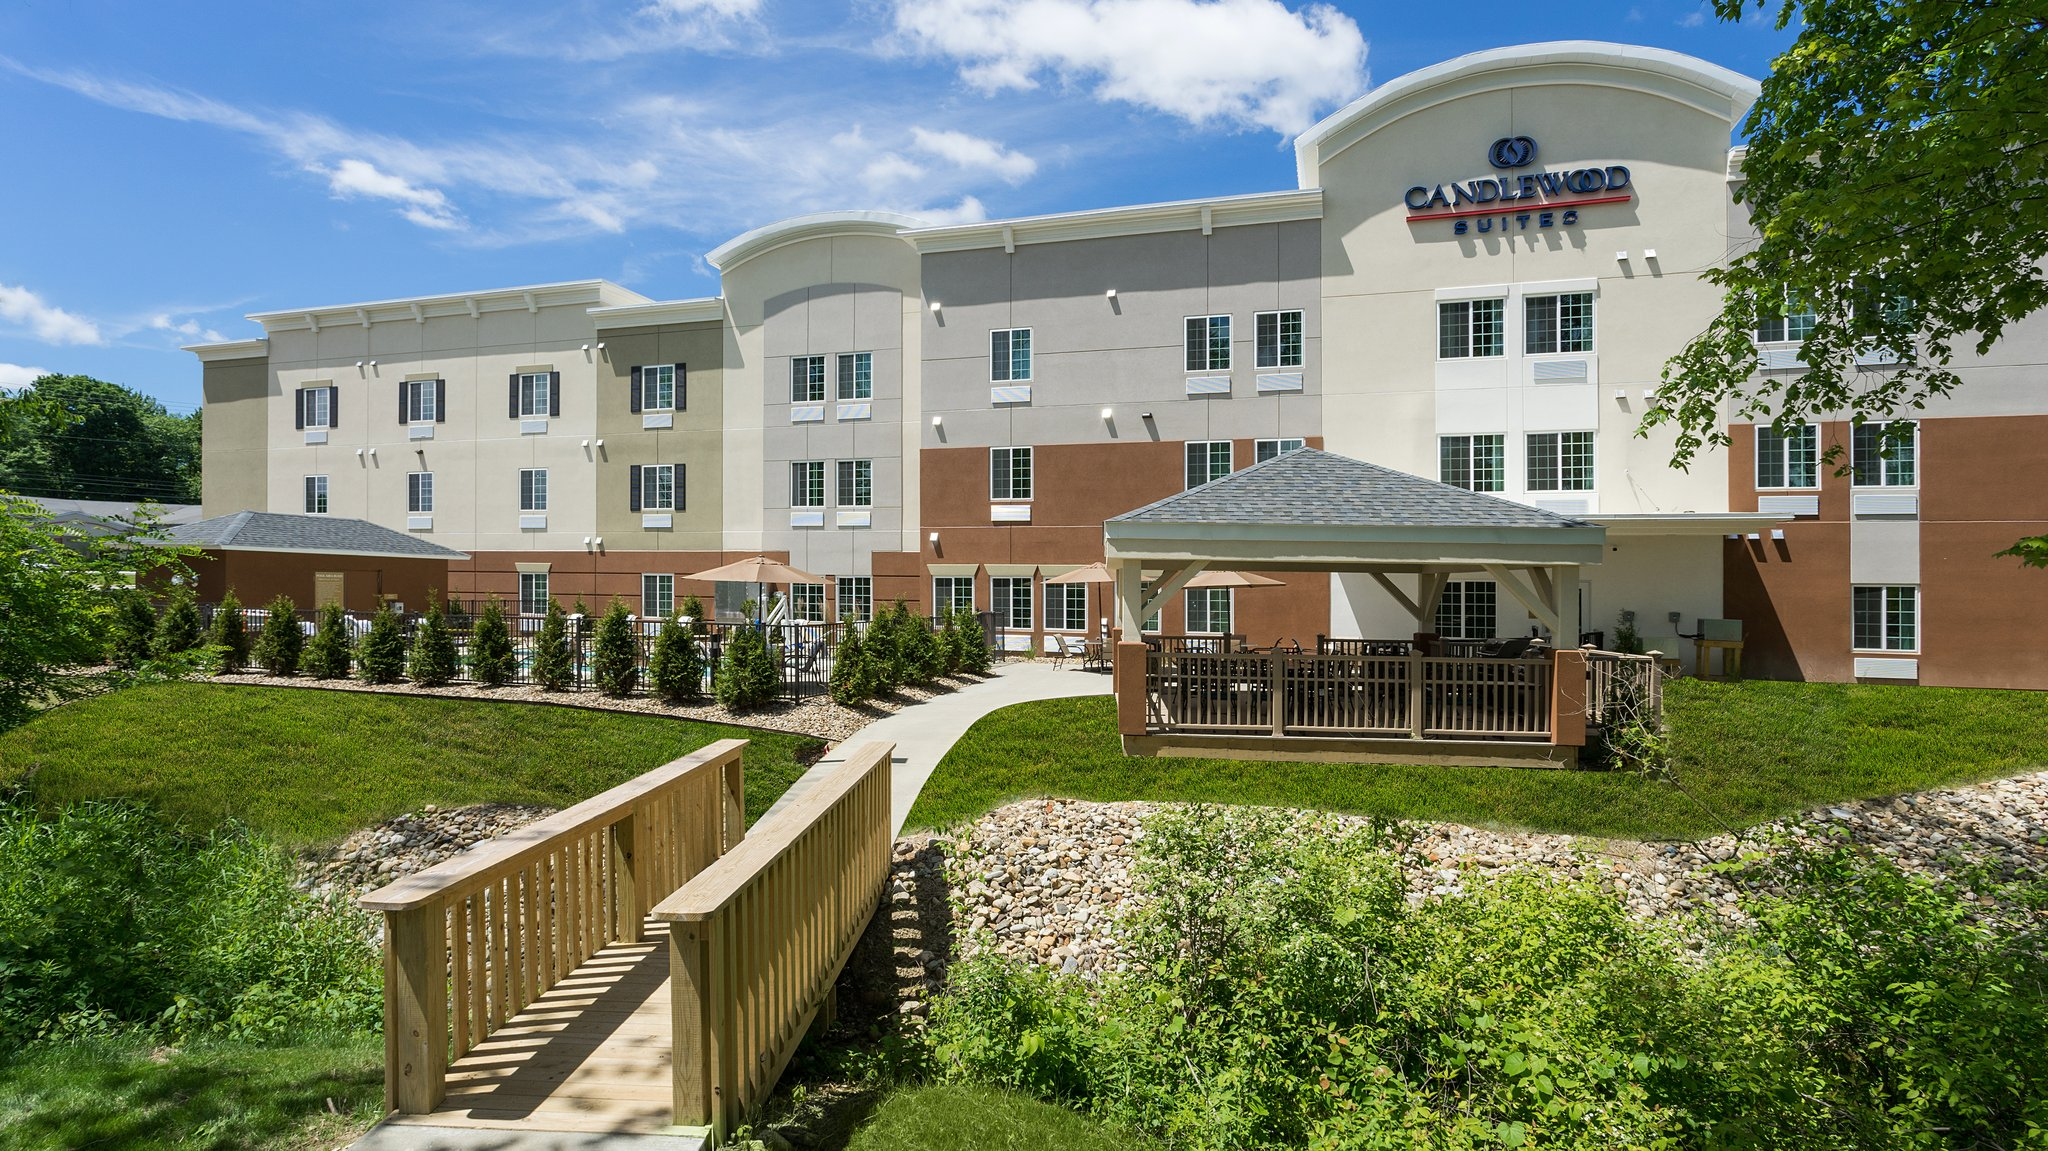 Candlewood Suites Grove City Outlet Ctr